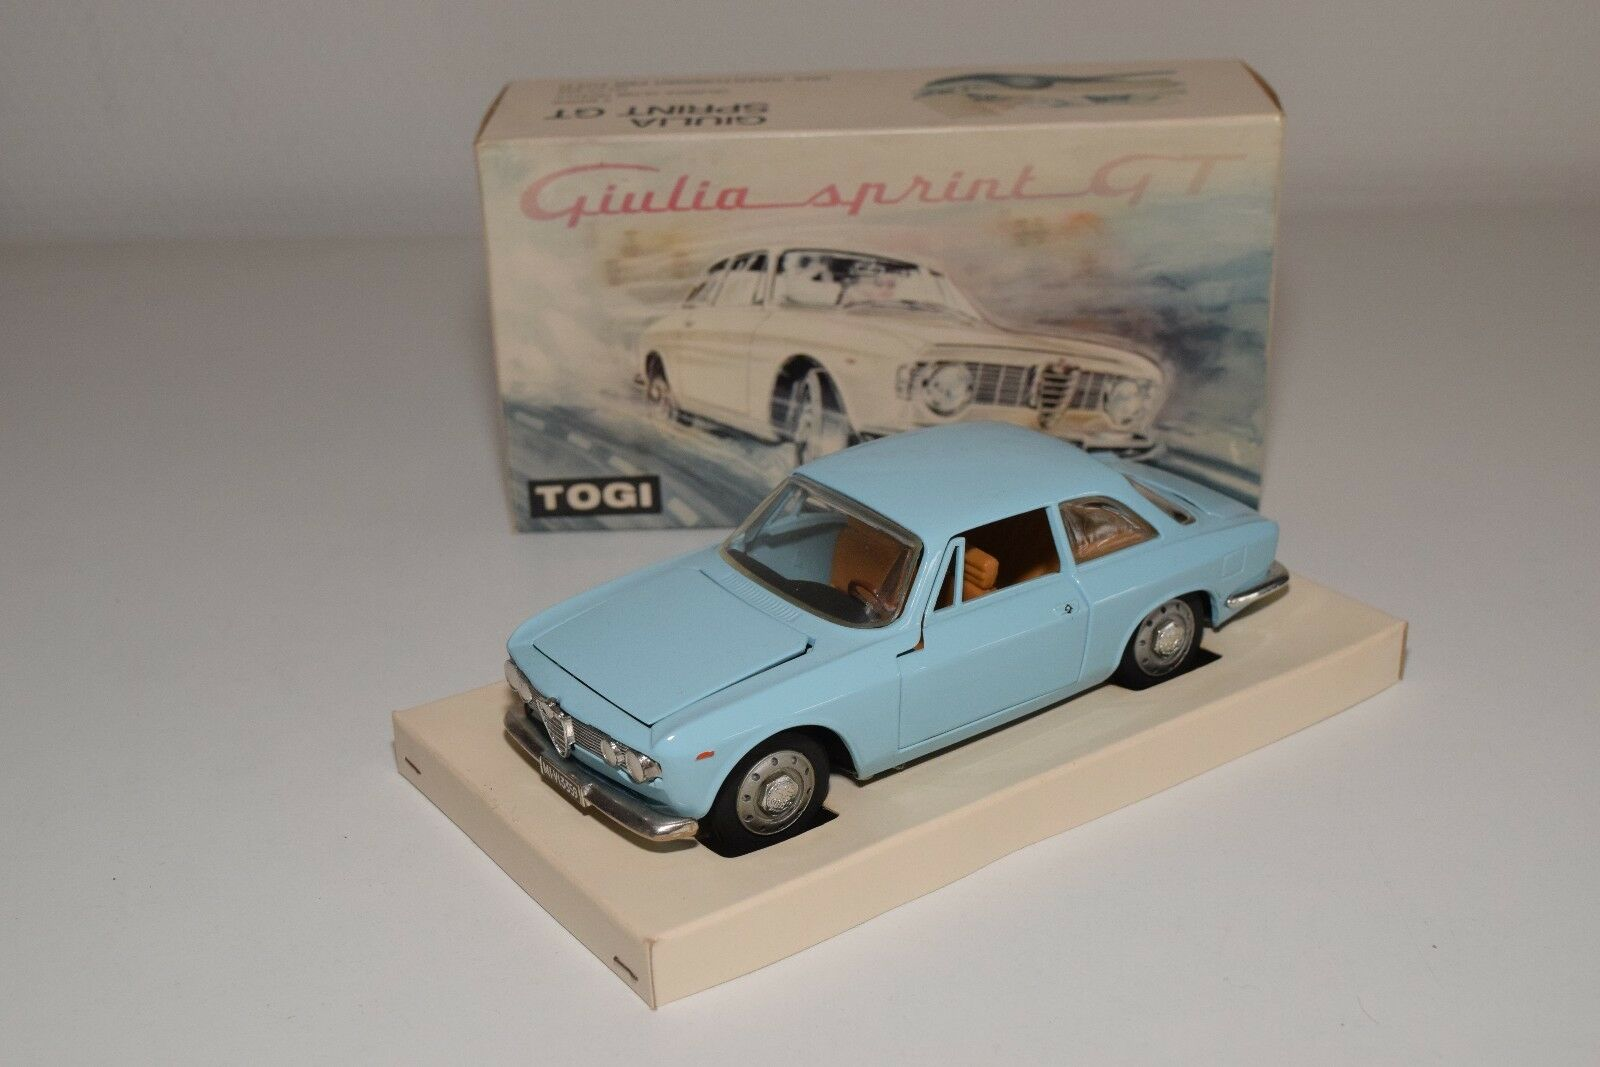 V 1 23 TOGI ALFA ROMEO GIULIA GT SPRINT 1300 JUNIOR LIGHT blu MINT BOXED